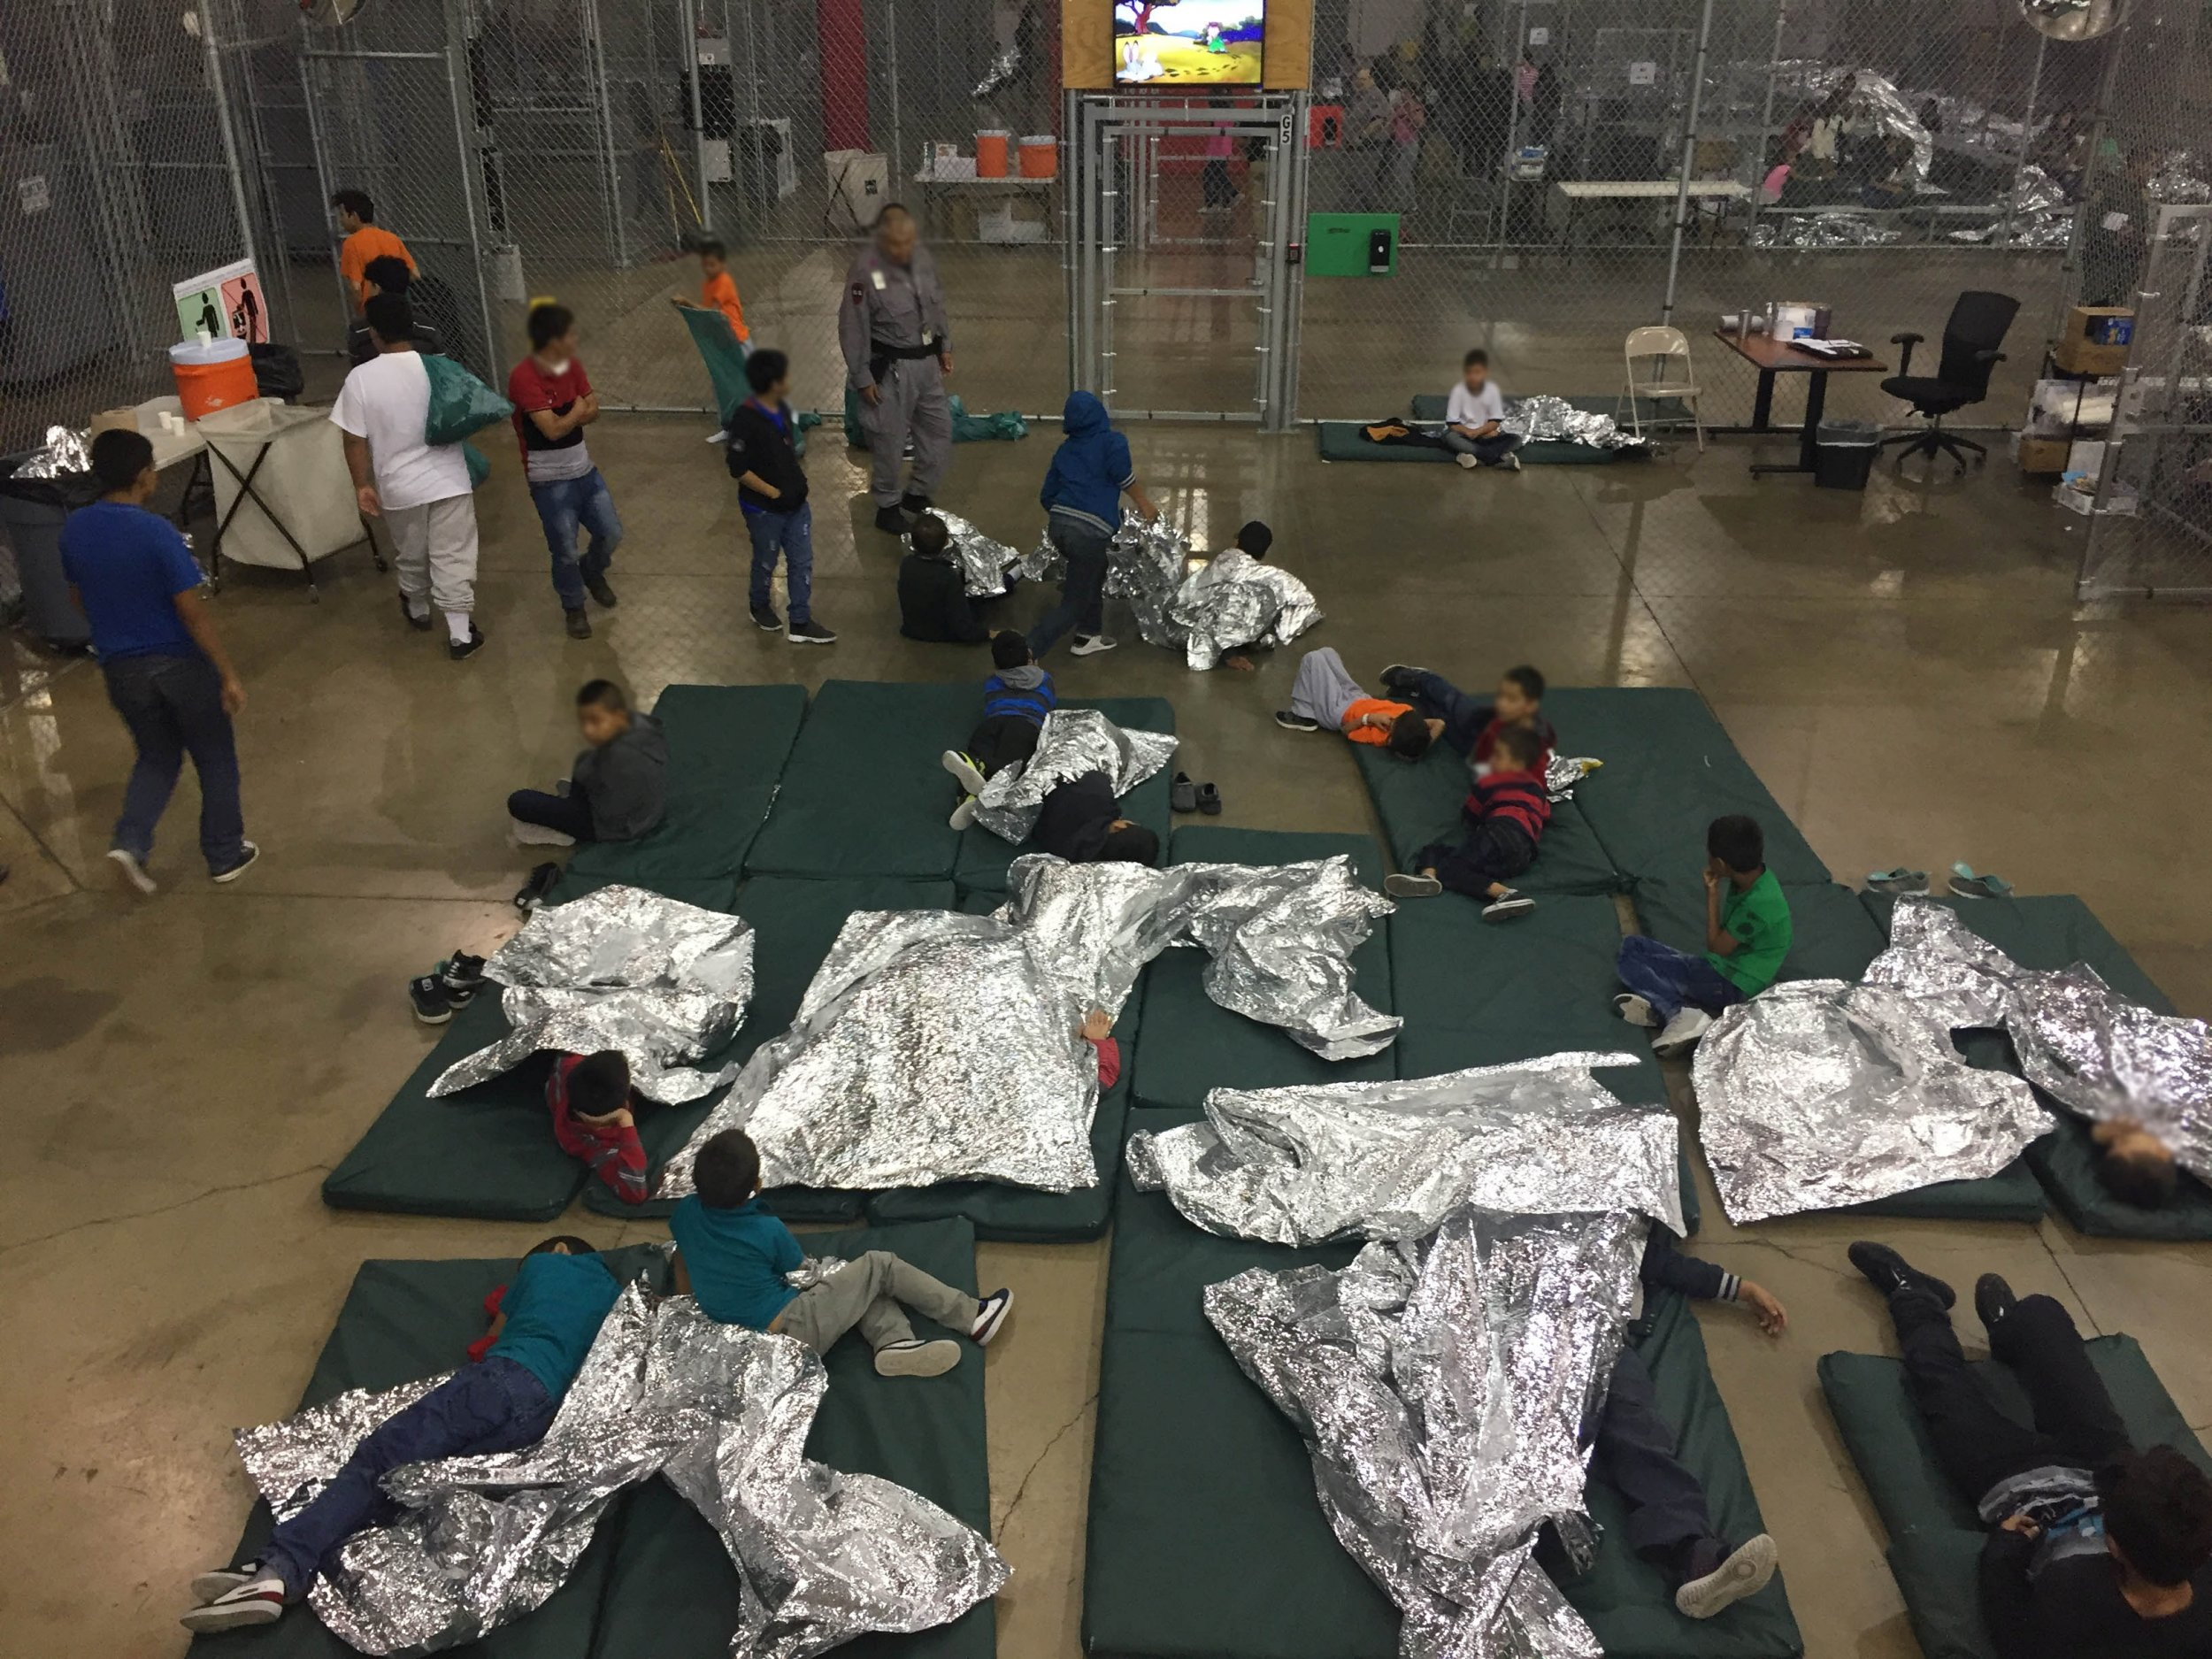 Treating Trauma Children Of Central City >> How To Help Children Separated From Their Families At The Border